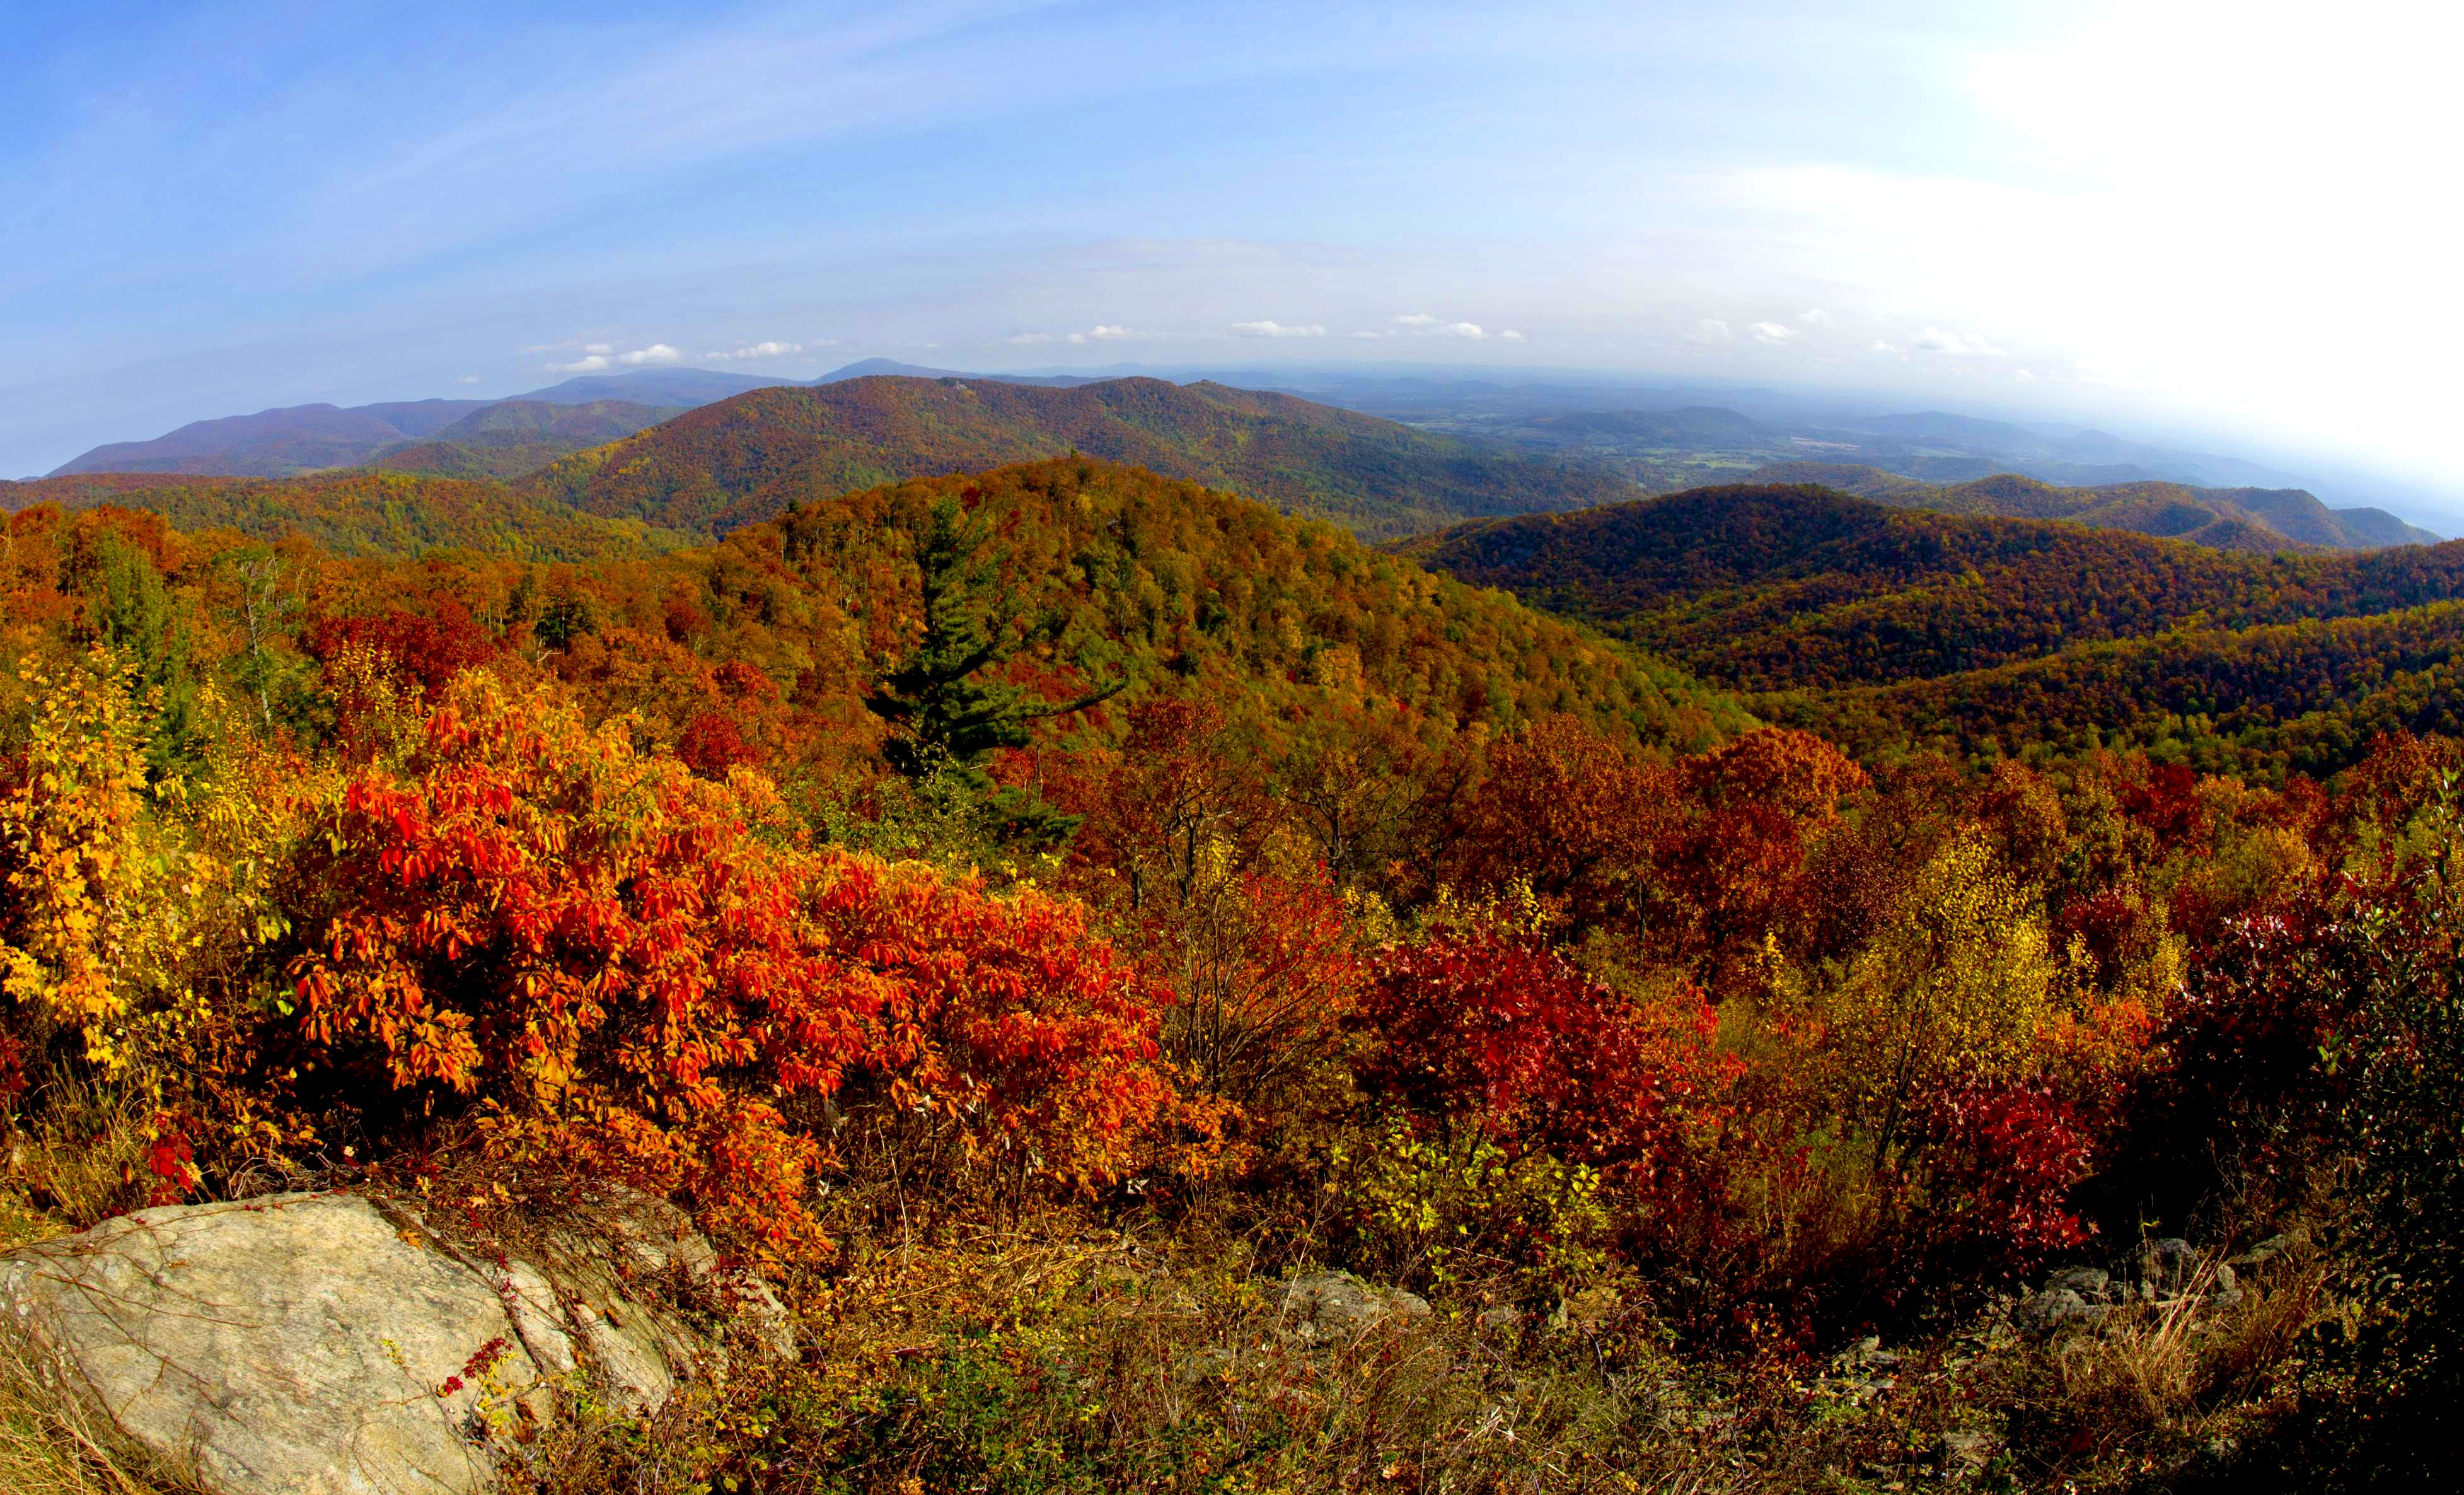 A view of the fall colors October 24, 2015 along Skyline drive in Shenandoah National Park in Virginia. Thousands of visitors descended on the park Saturday creating miles of traffic backups at all of the entrances making traffic control a nightmare for police. AFP PHOTO/KAREN BLEIER / AFP / KAREN BLEIER (Photo credit should read KAREN BLEIER/AFP/Getty Images)